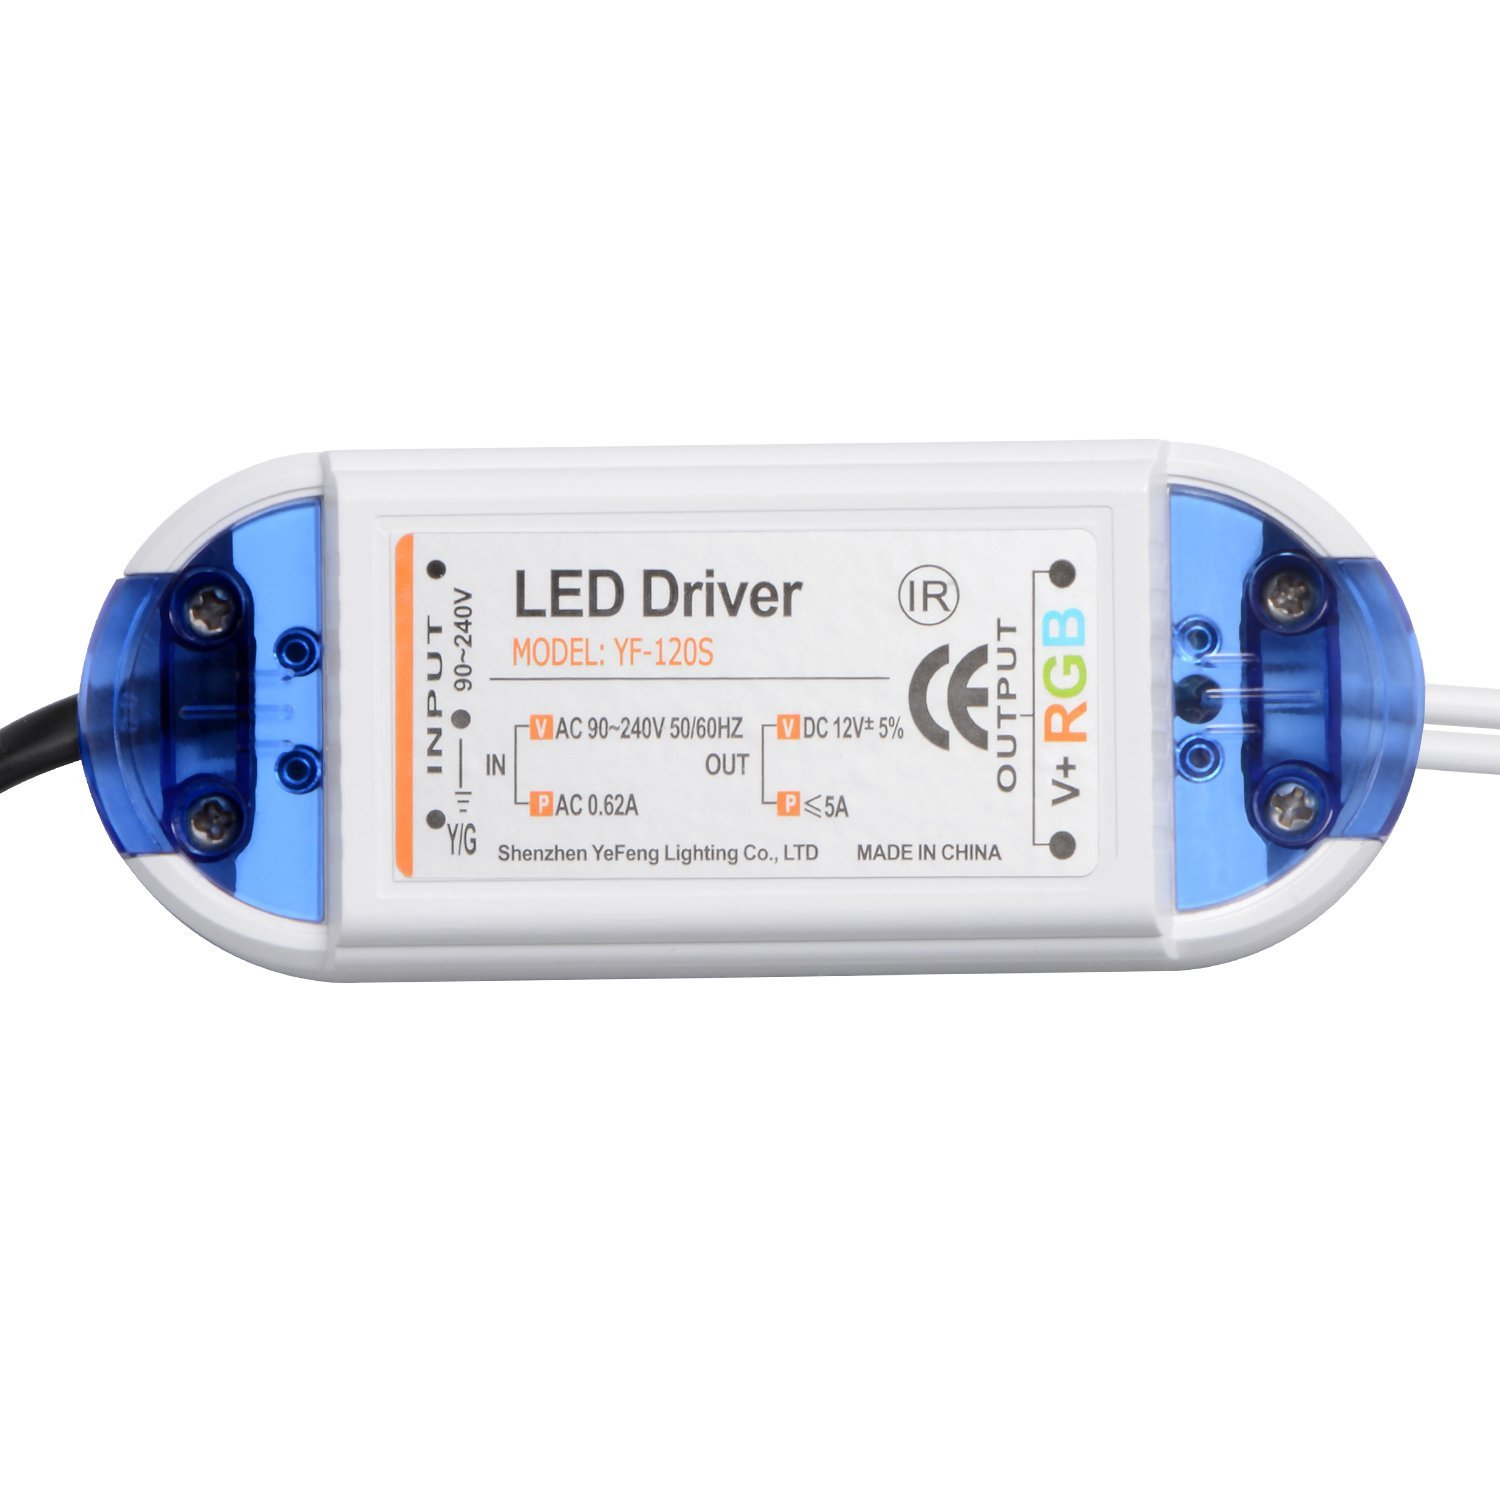 ZX AC90-240V To DC12V 5A 60W Power Adpter LED Driver with 24 Keys Remote Control for RGB Strip Light